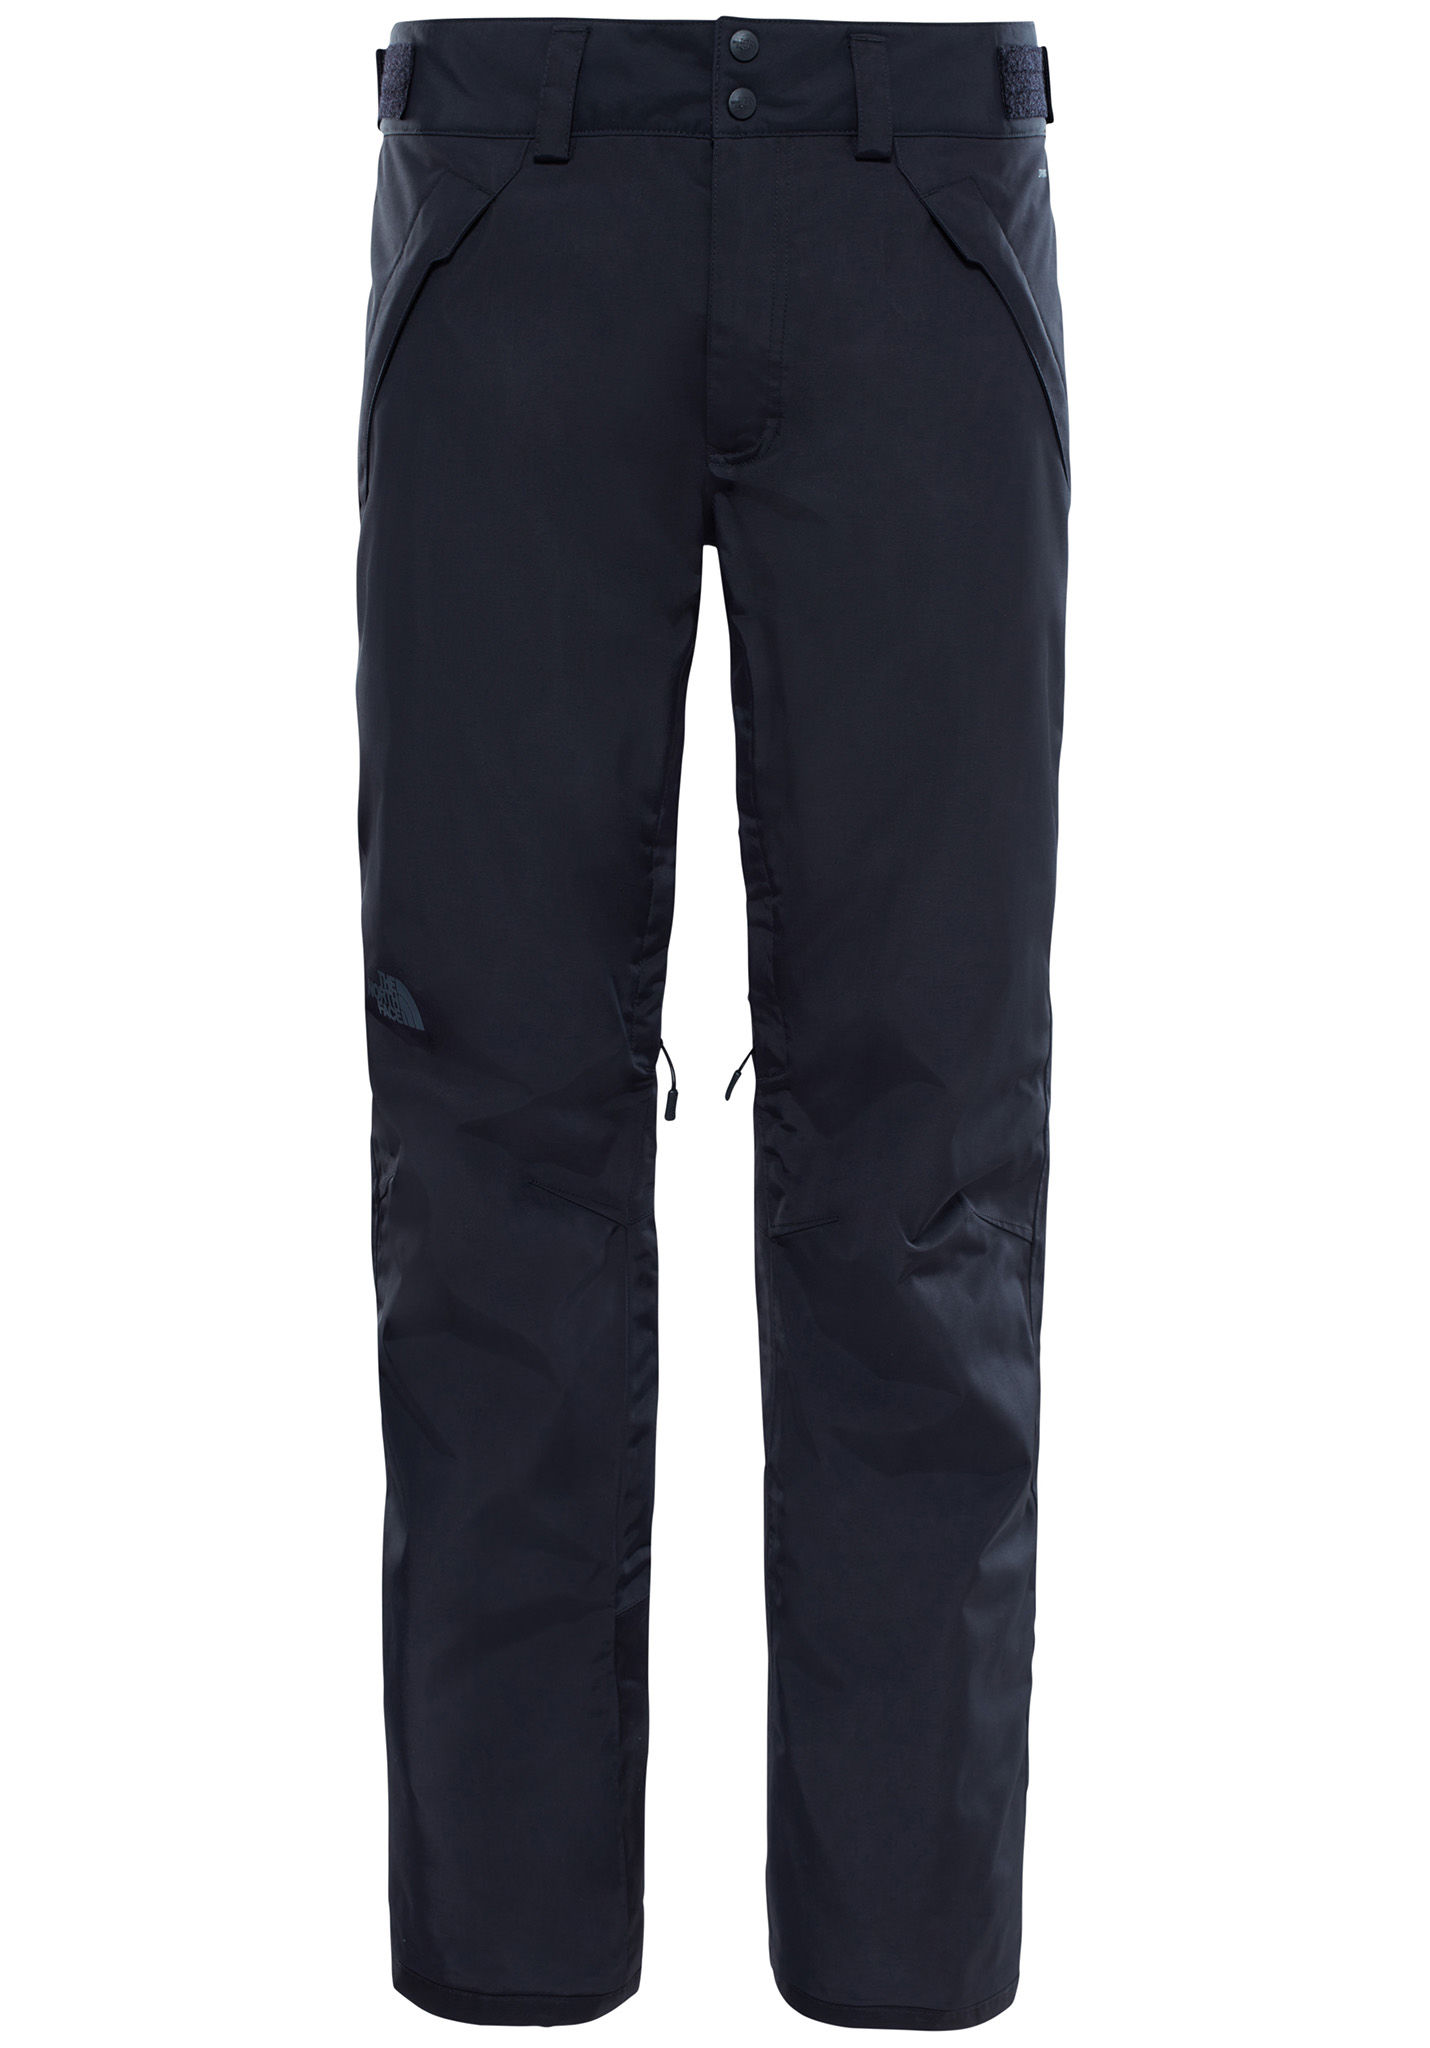 THE NORTH FACE Presena - Pantalone snowboard per Uomo - Nero - Planet Sports 8050e939ed92